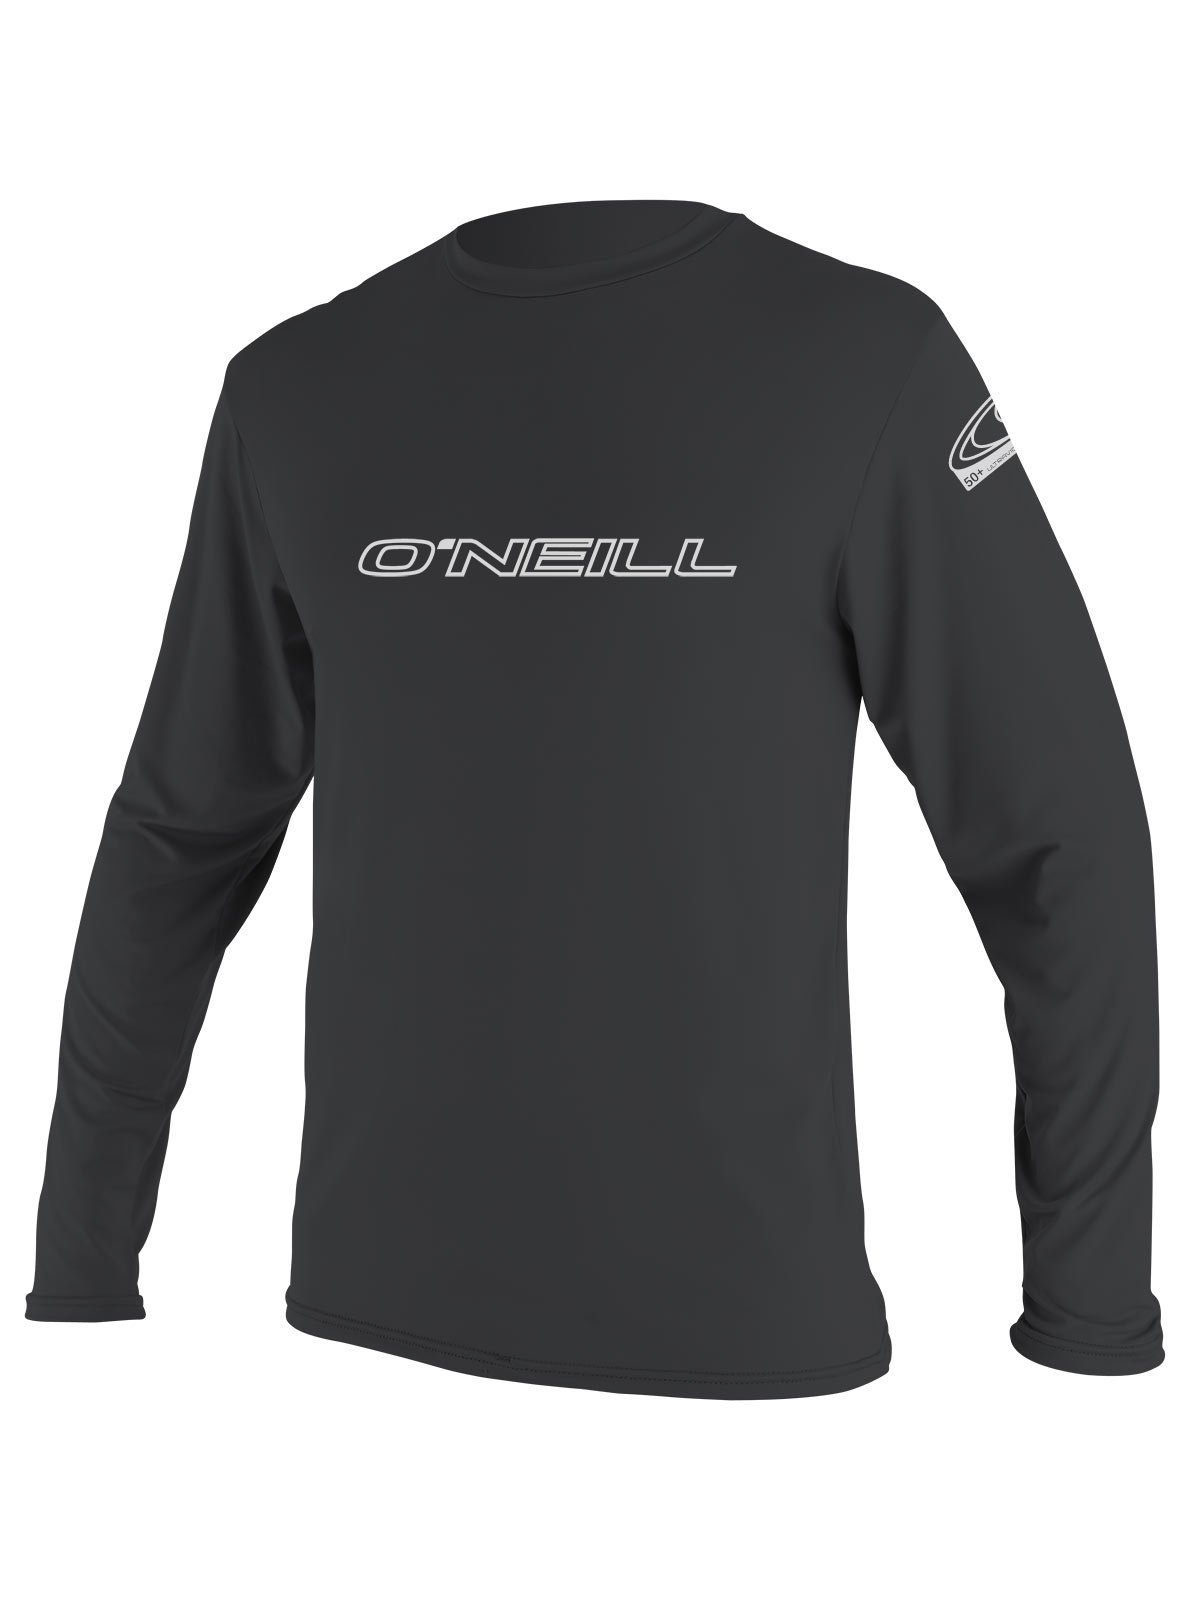 O'Neill Men's Basic Skins Longsleeve Rash Tee M Graphite (4339IS) by O'Neill Wetsuits (Image #1)